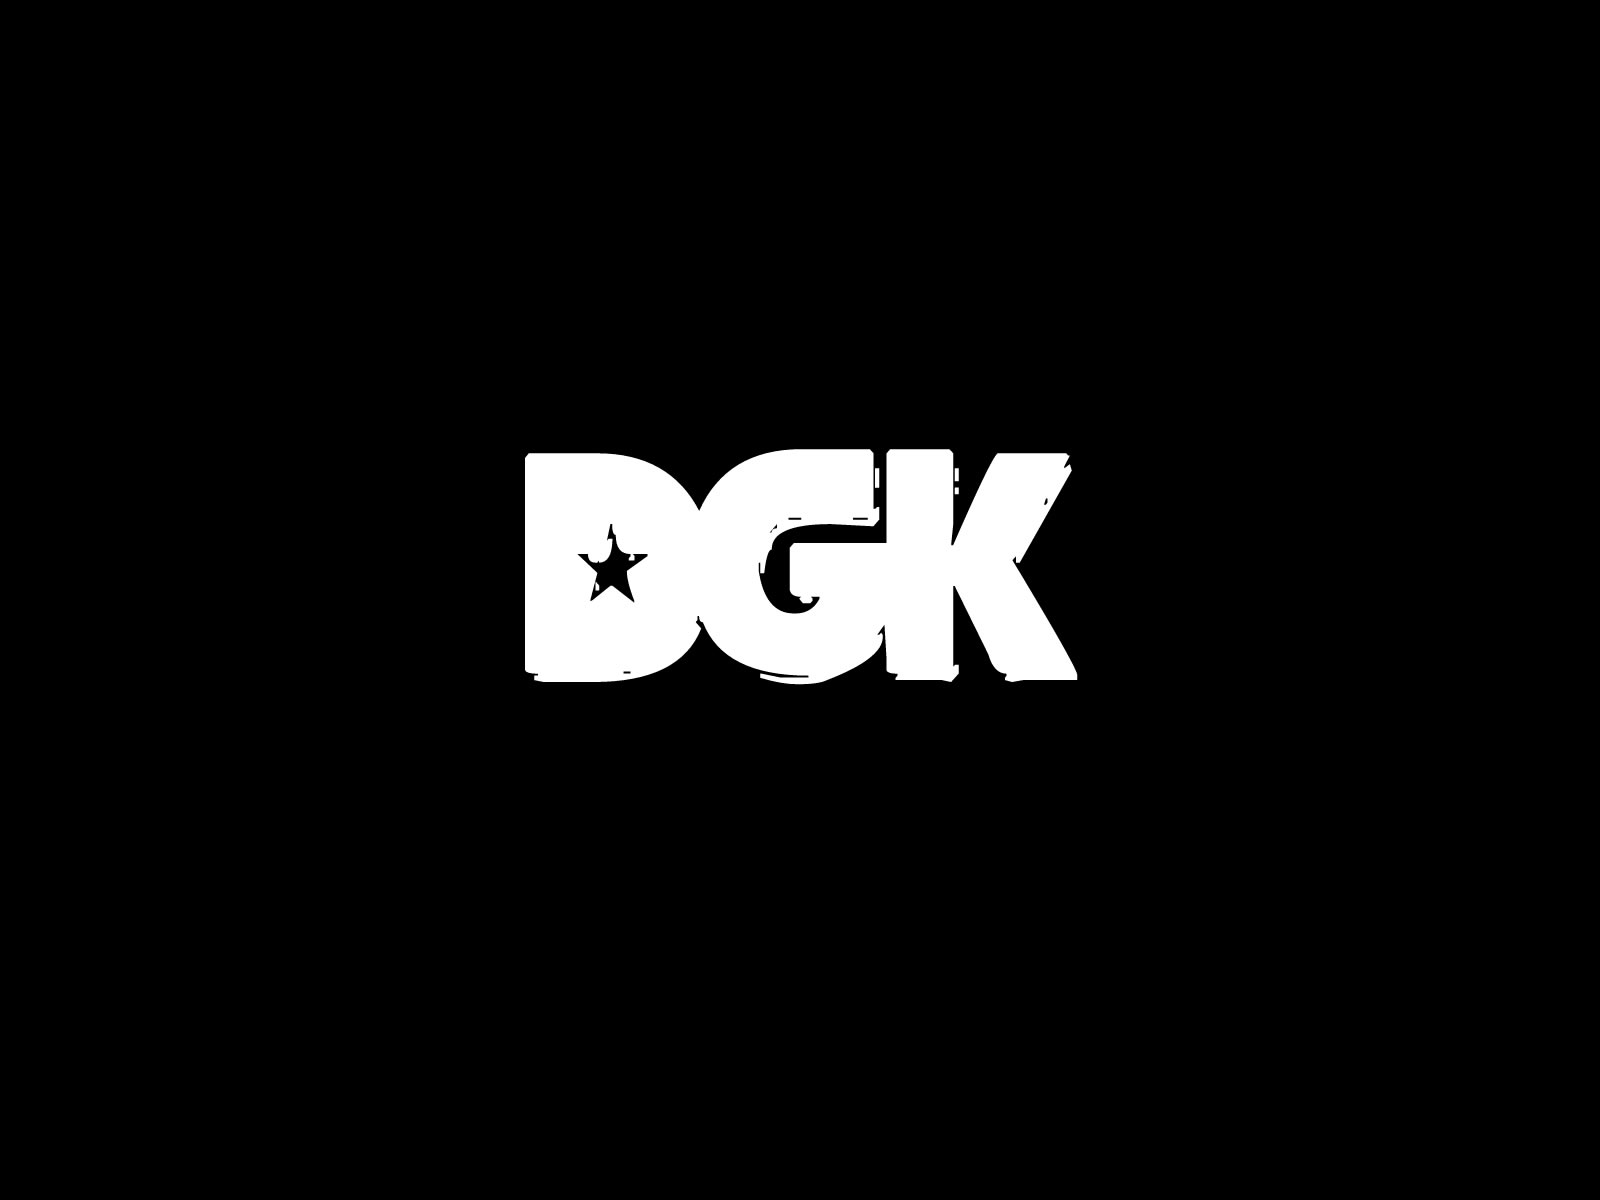 47 Dgk Wallpaper Hd On Wallpapersafari